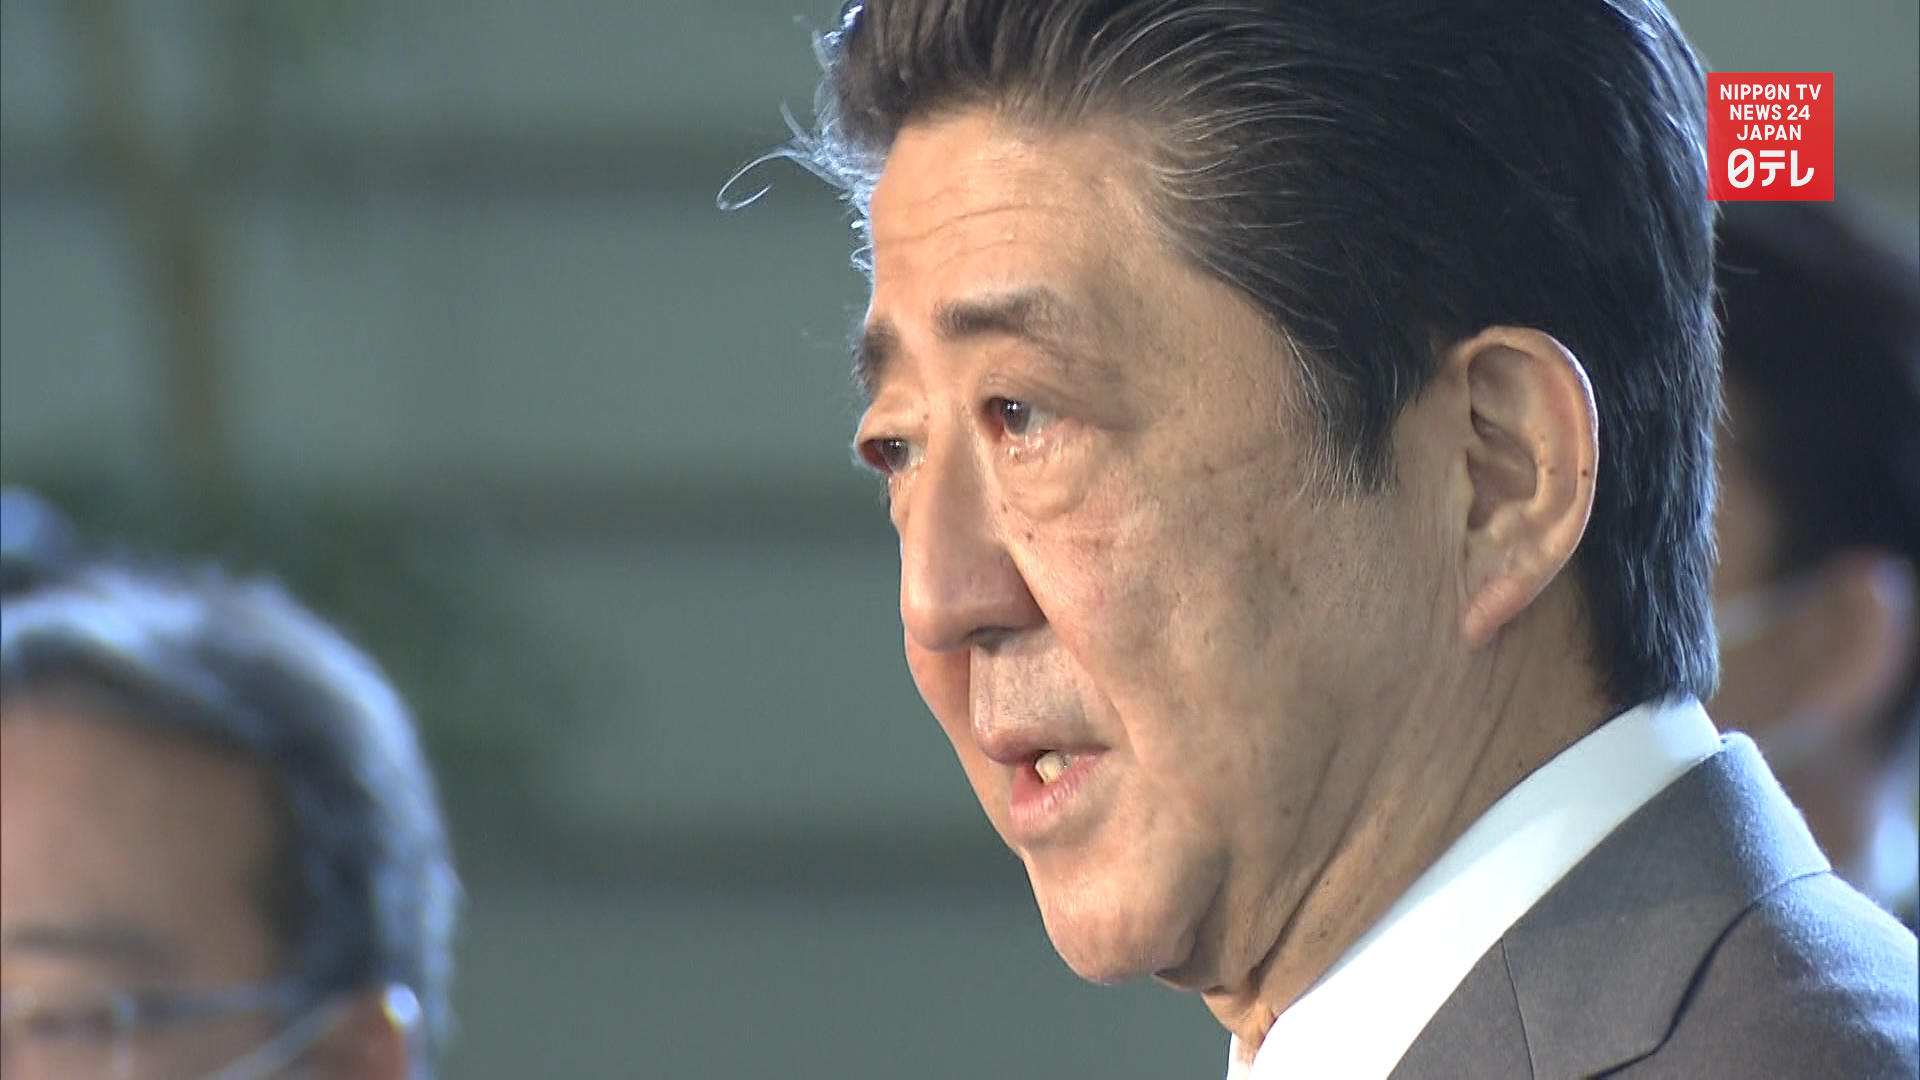 Abe calls on public to cooperate on pandemic